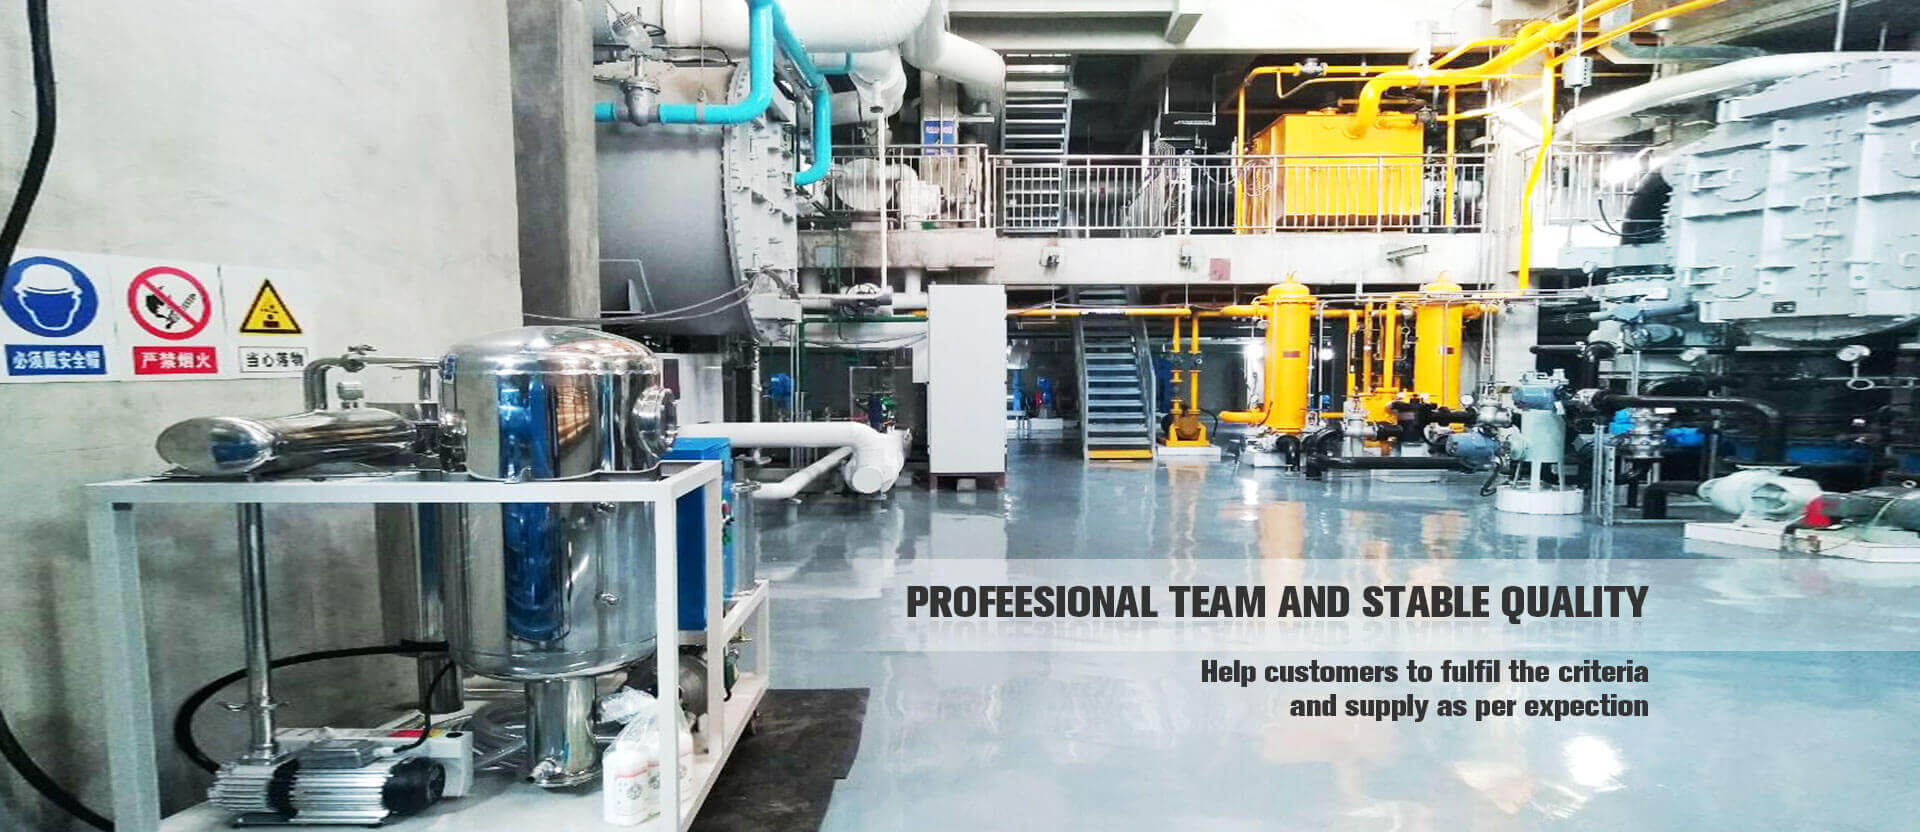 Profeesional Team and Stable Quality